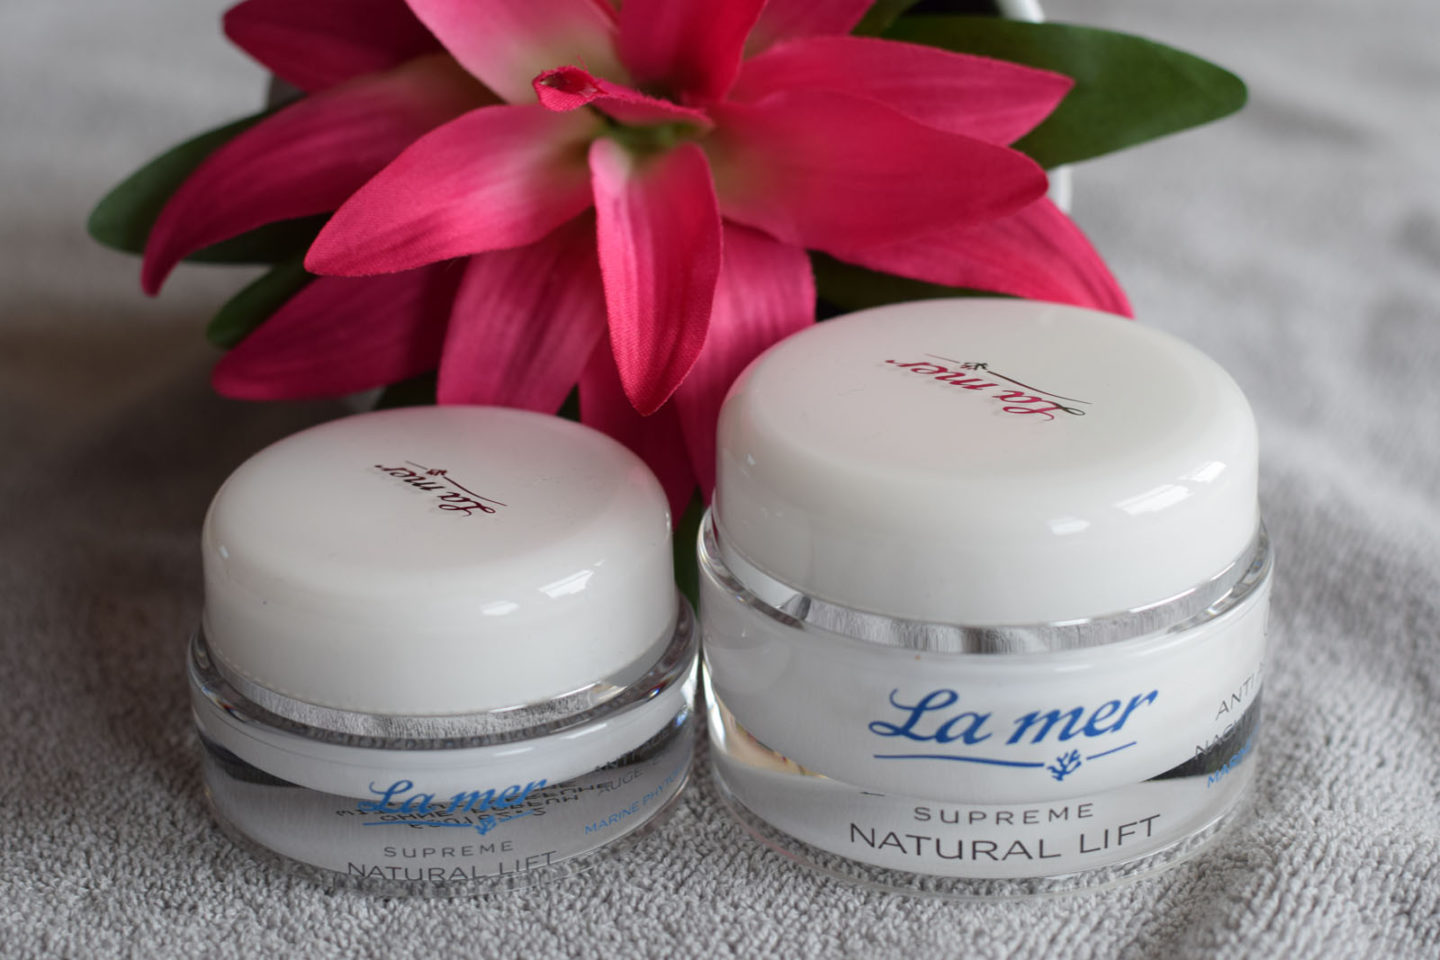 La mer – Die Supreme Natural Lift Anti Age Serie